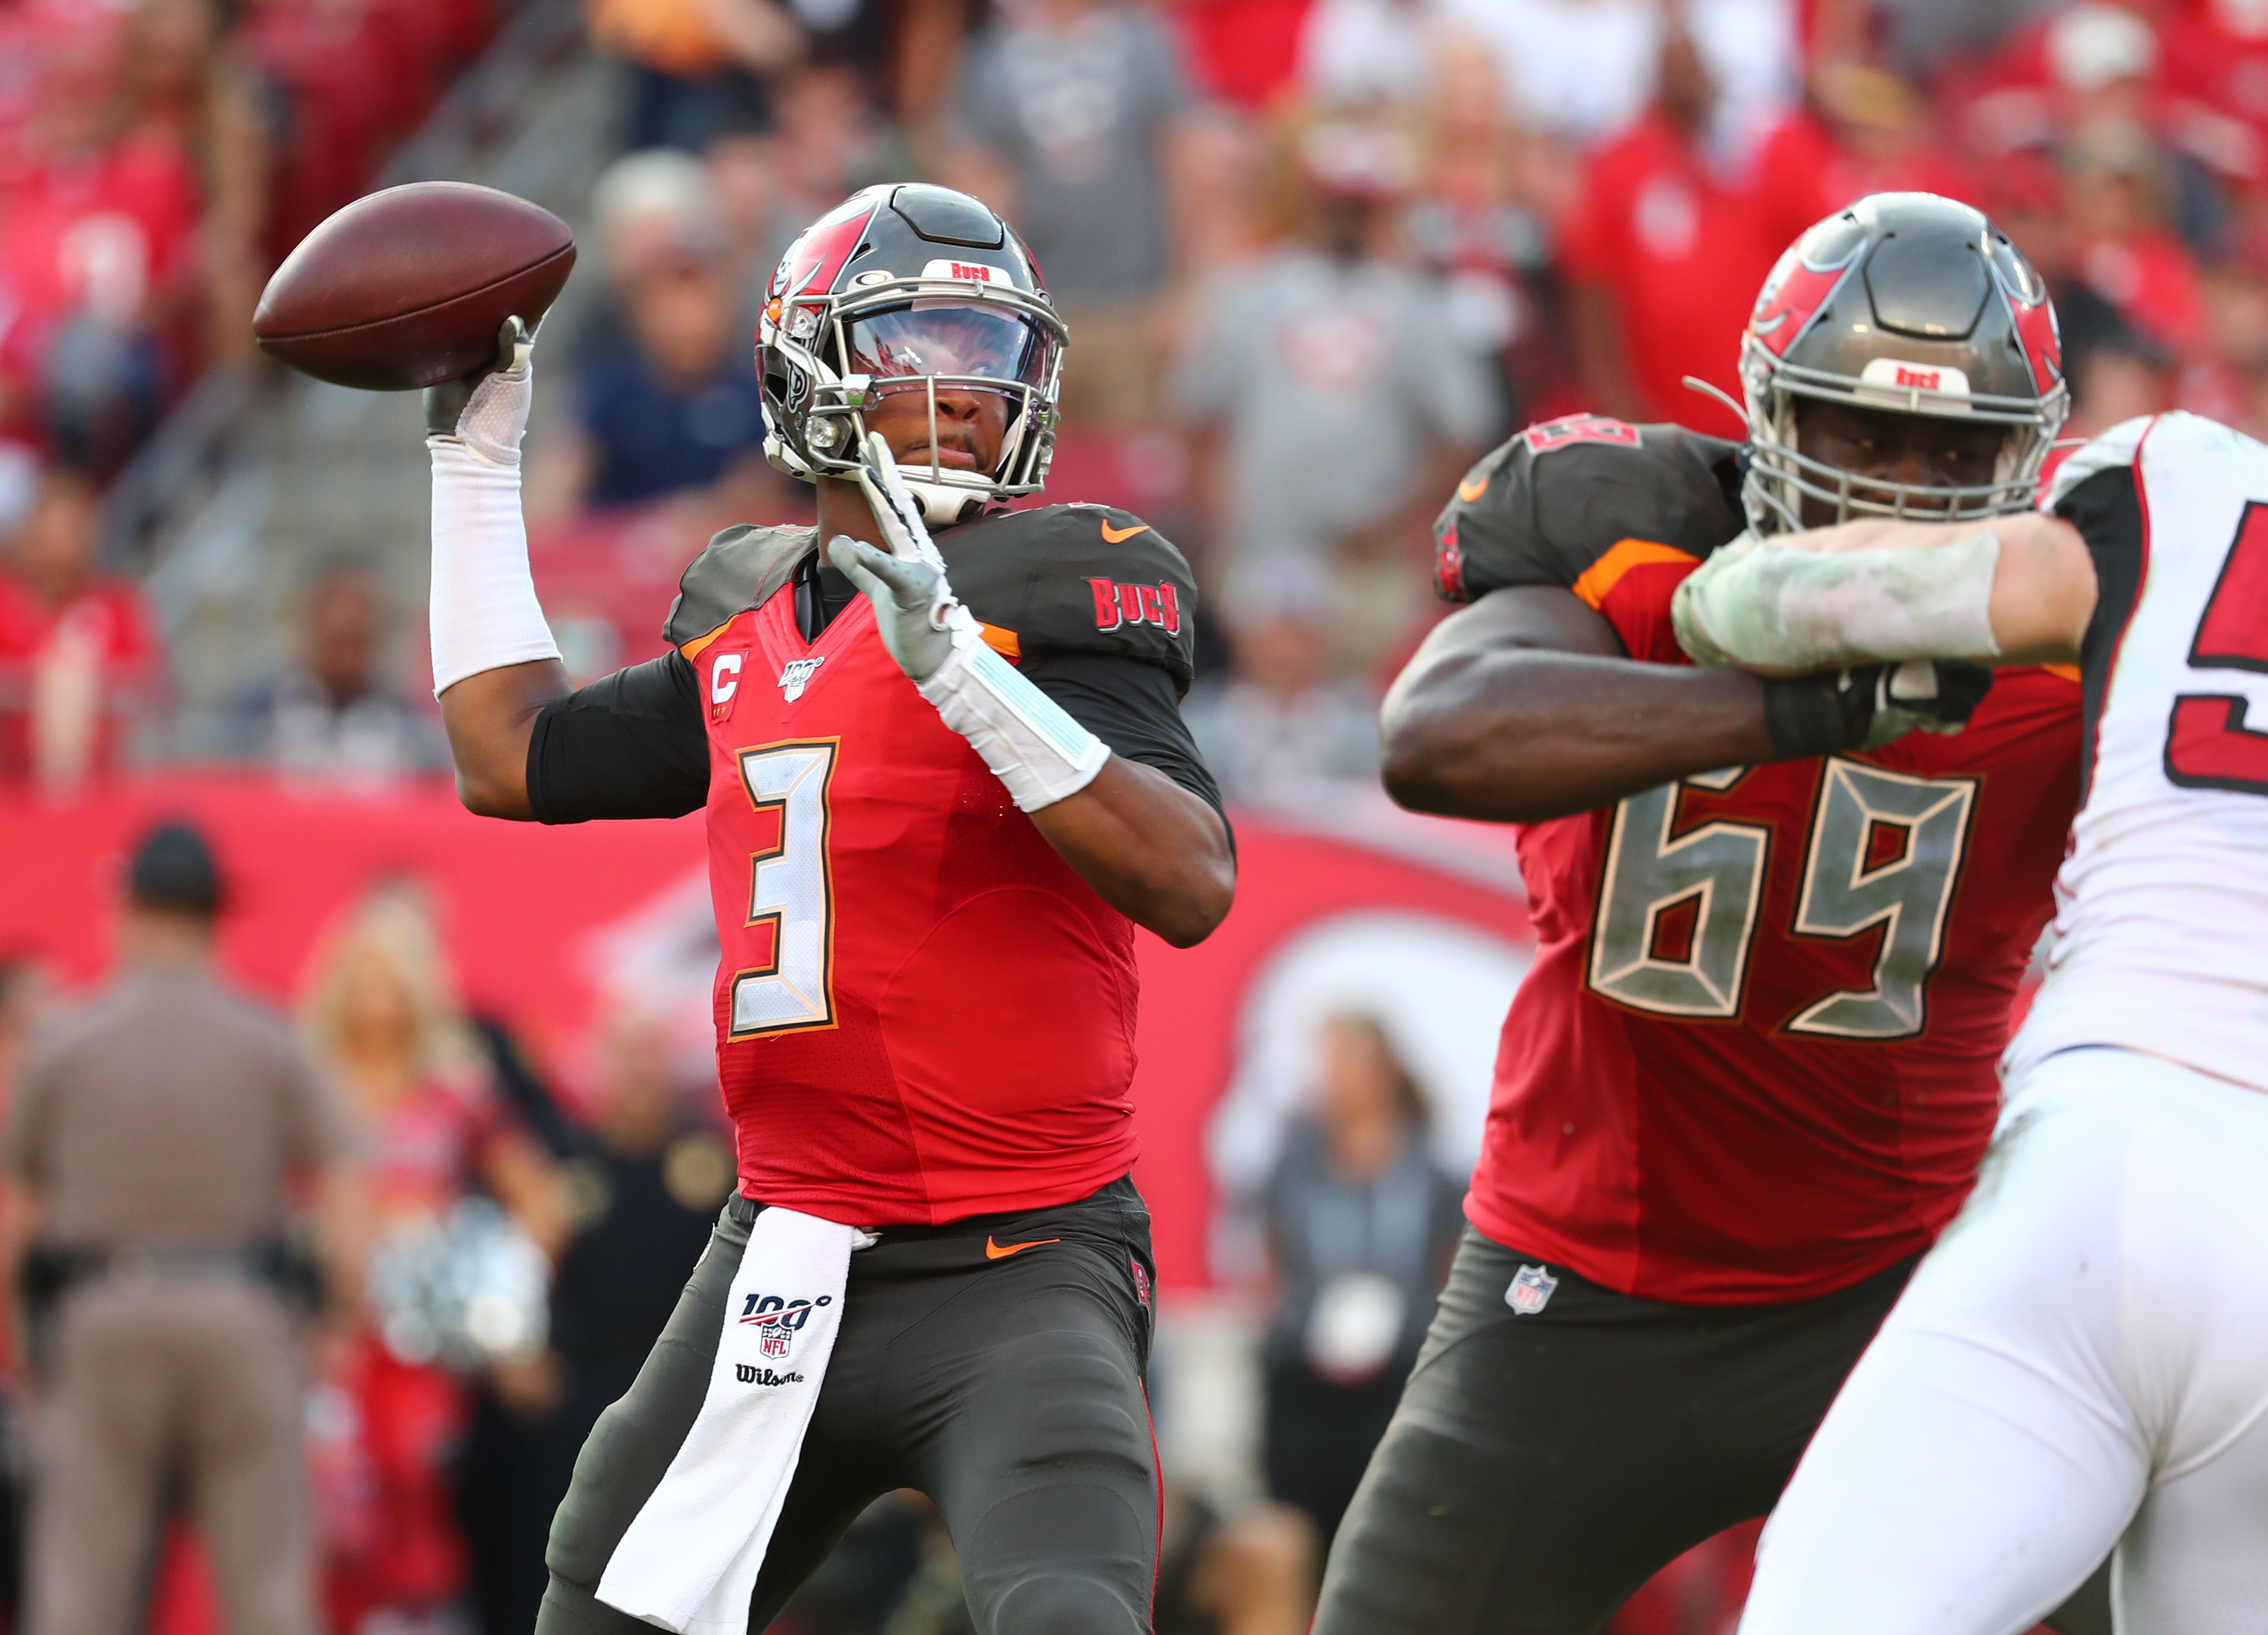 Bucs QB coach Clyde Christensen believes he 'failed' Jameis Winston